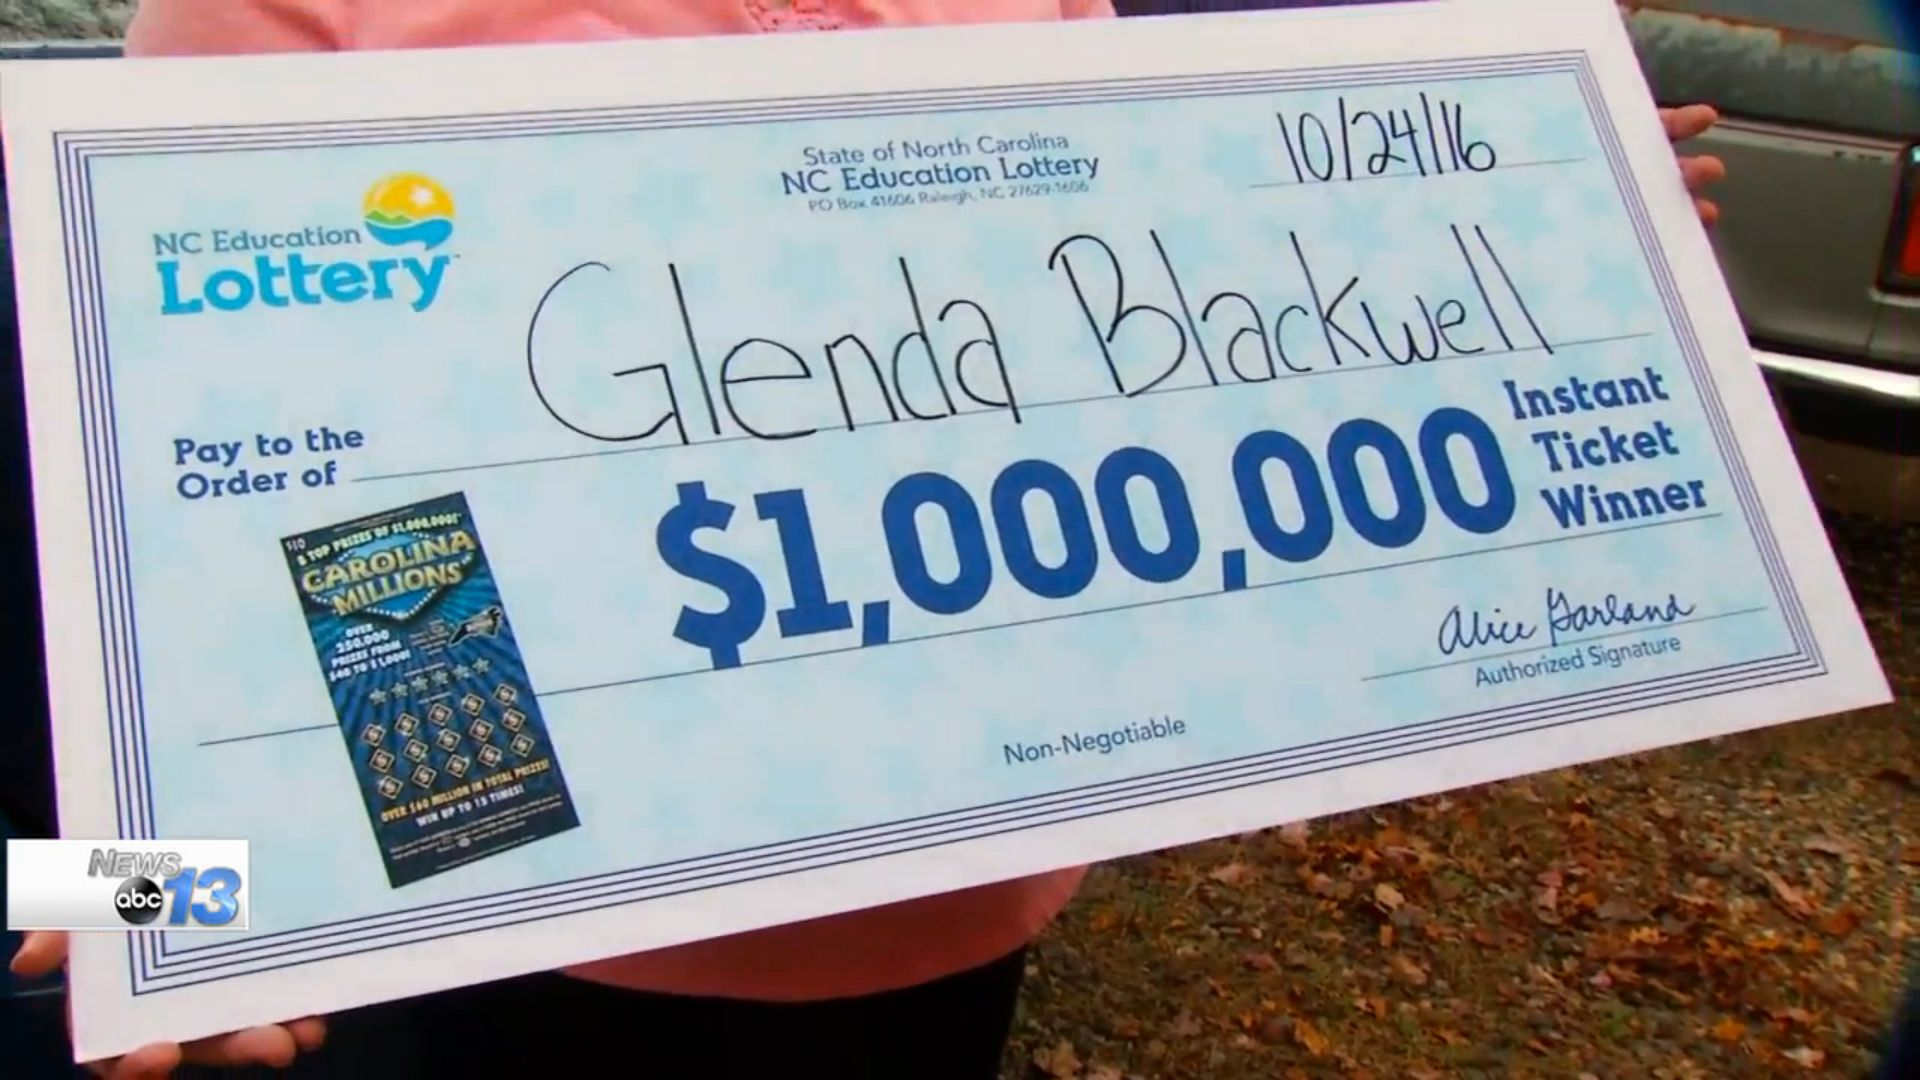 A North Carolina woman who was trying to prove that lottery tickets are a waste of money instead won $1,000,000.